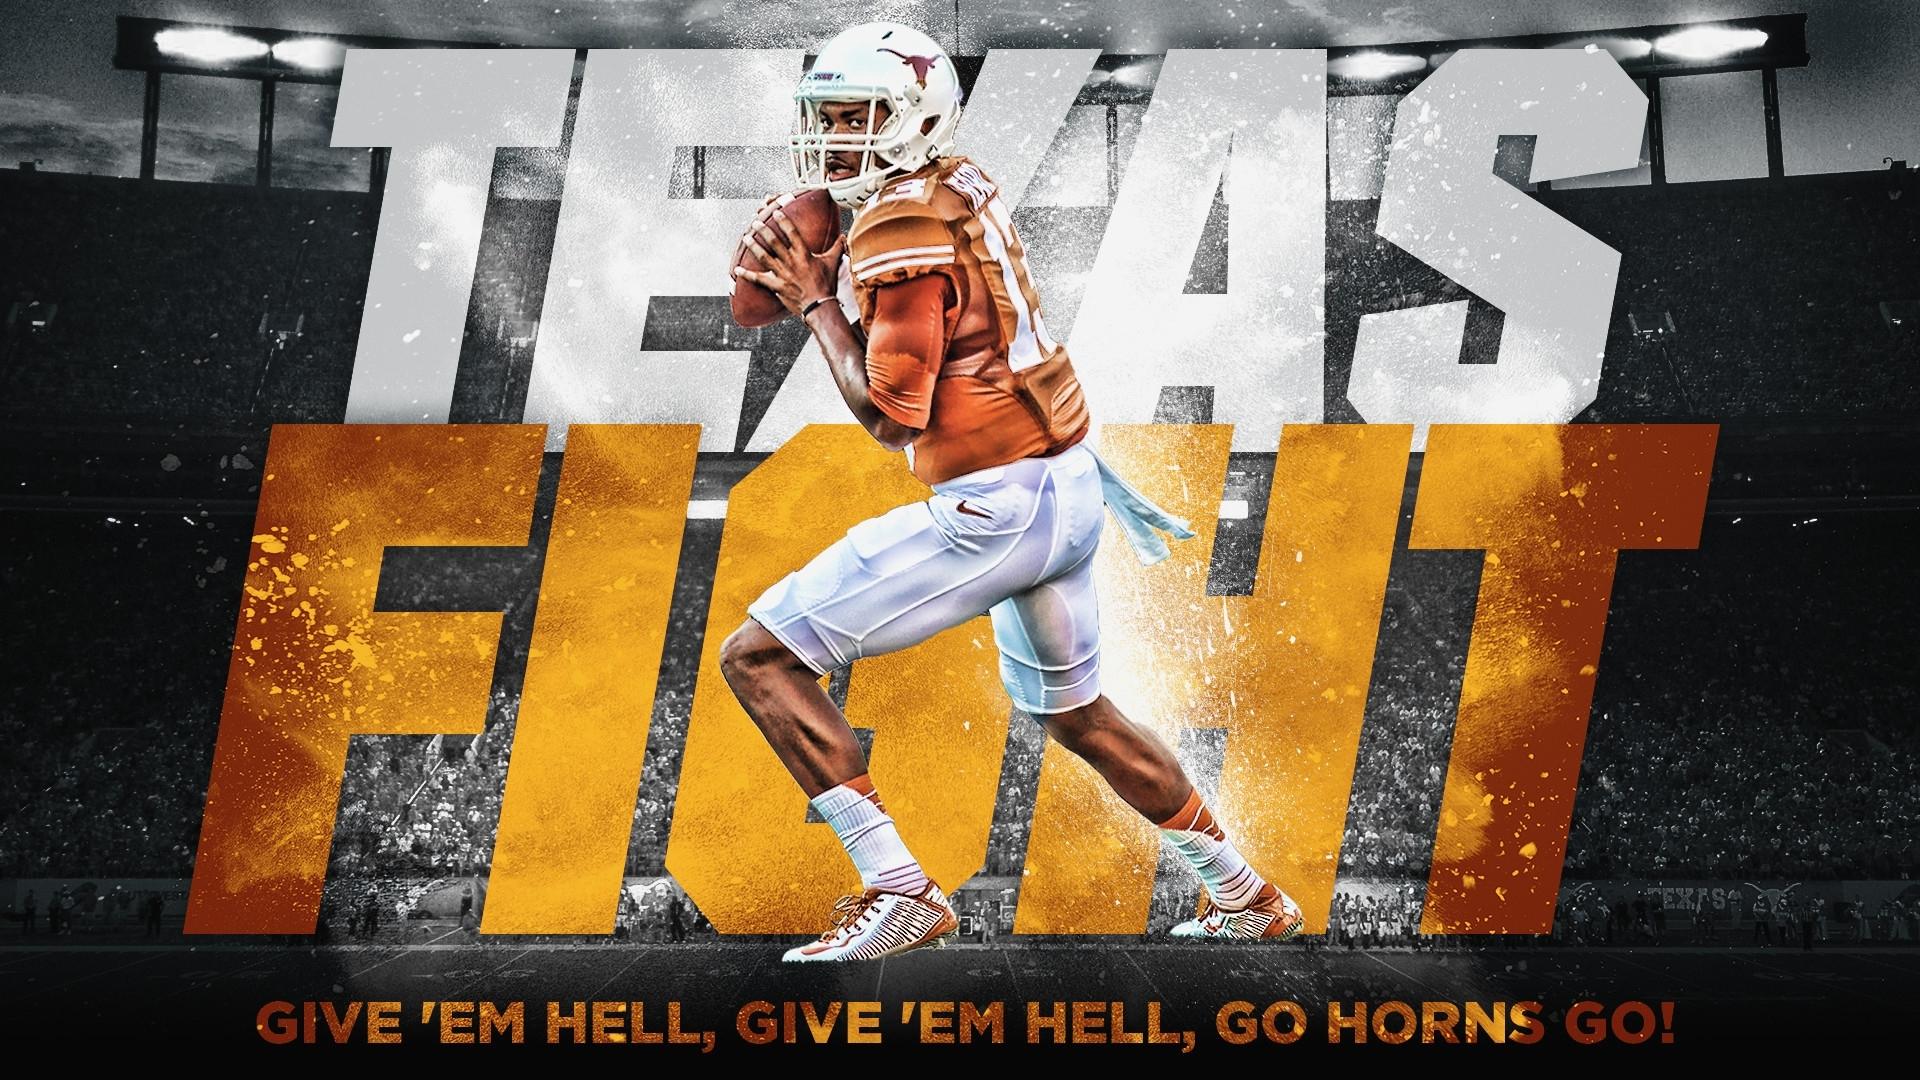 Title Texas Longhorn Football Wallpaper Free Download Images And Picture Dimension 1920 X 1080 File Type JPG JPEG